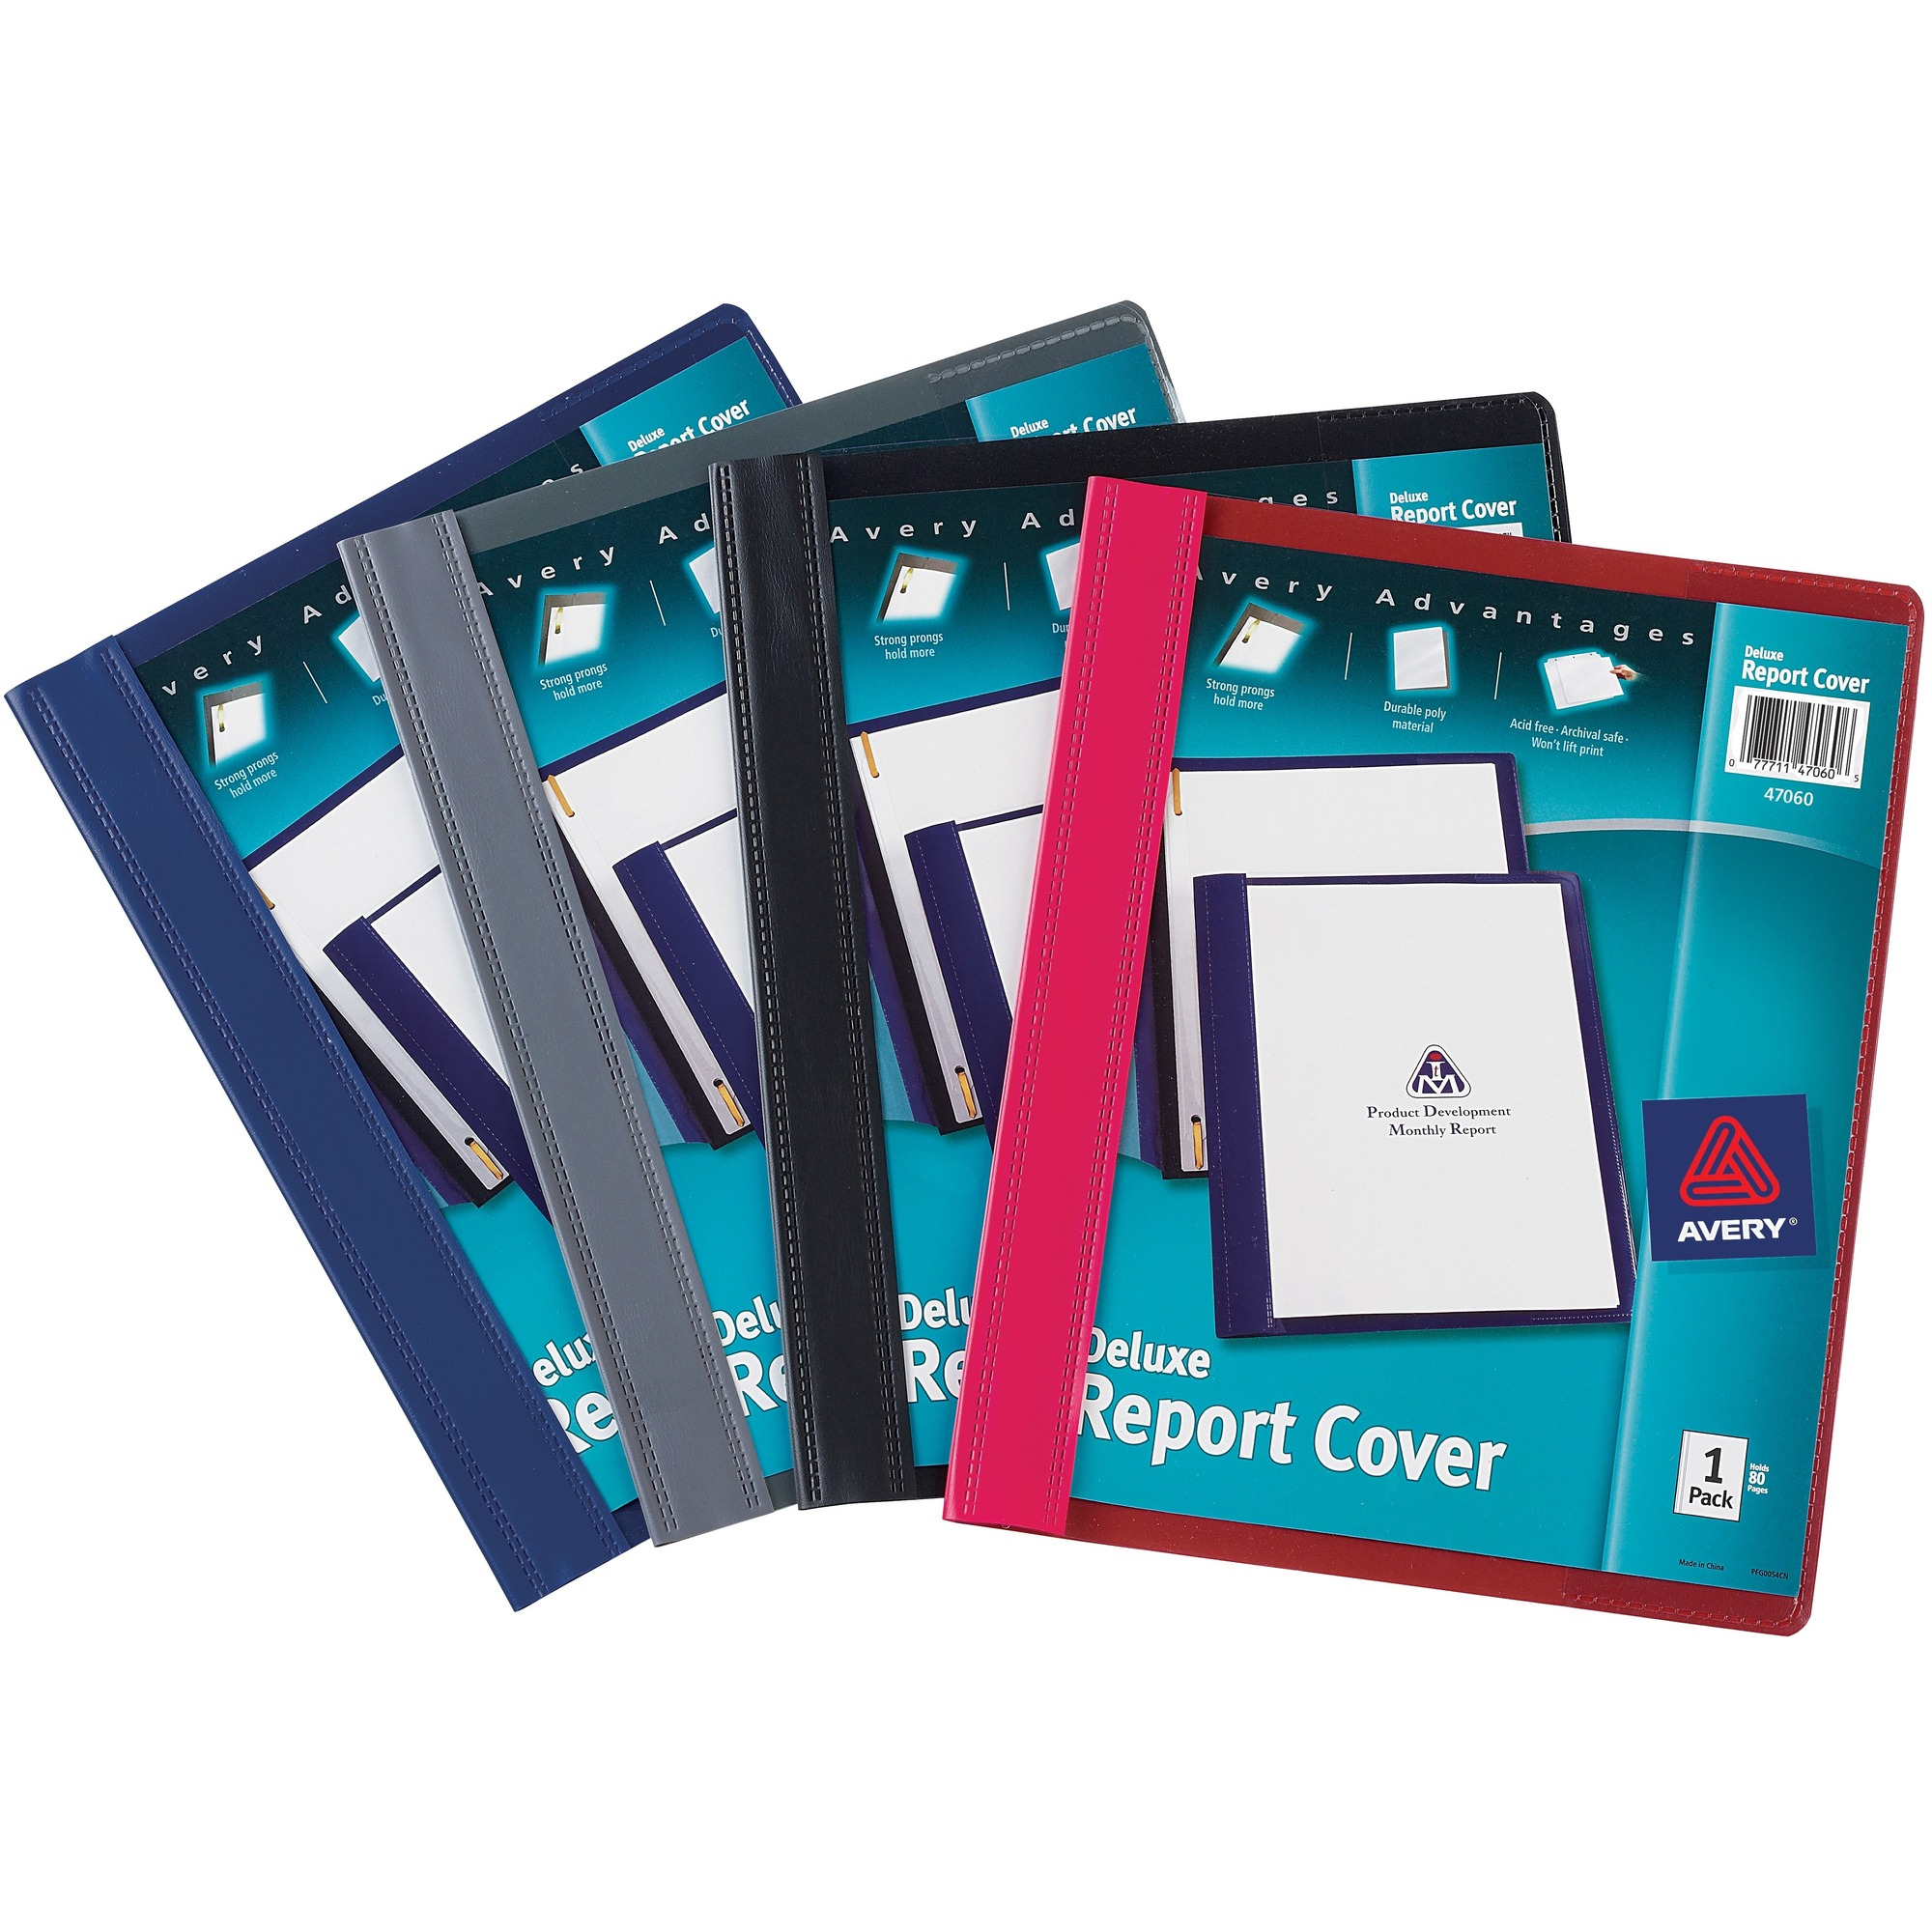 ocean stationery and office supplies    office supplies    filing supplies    report covers